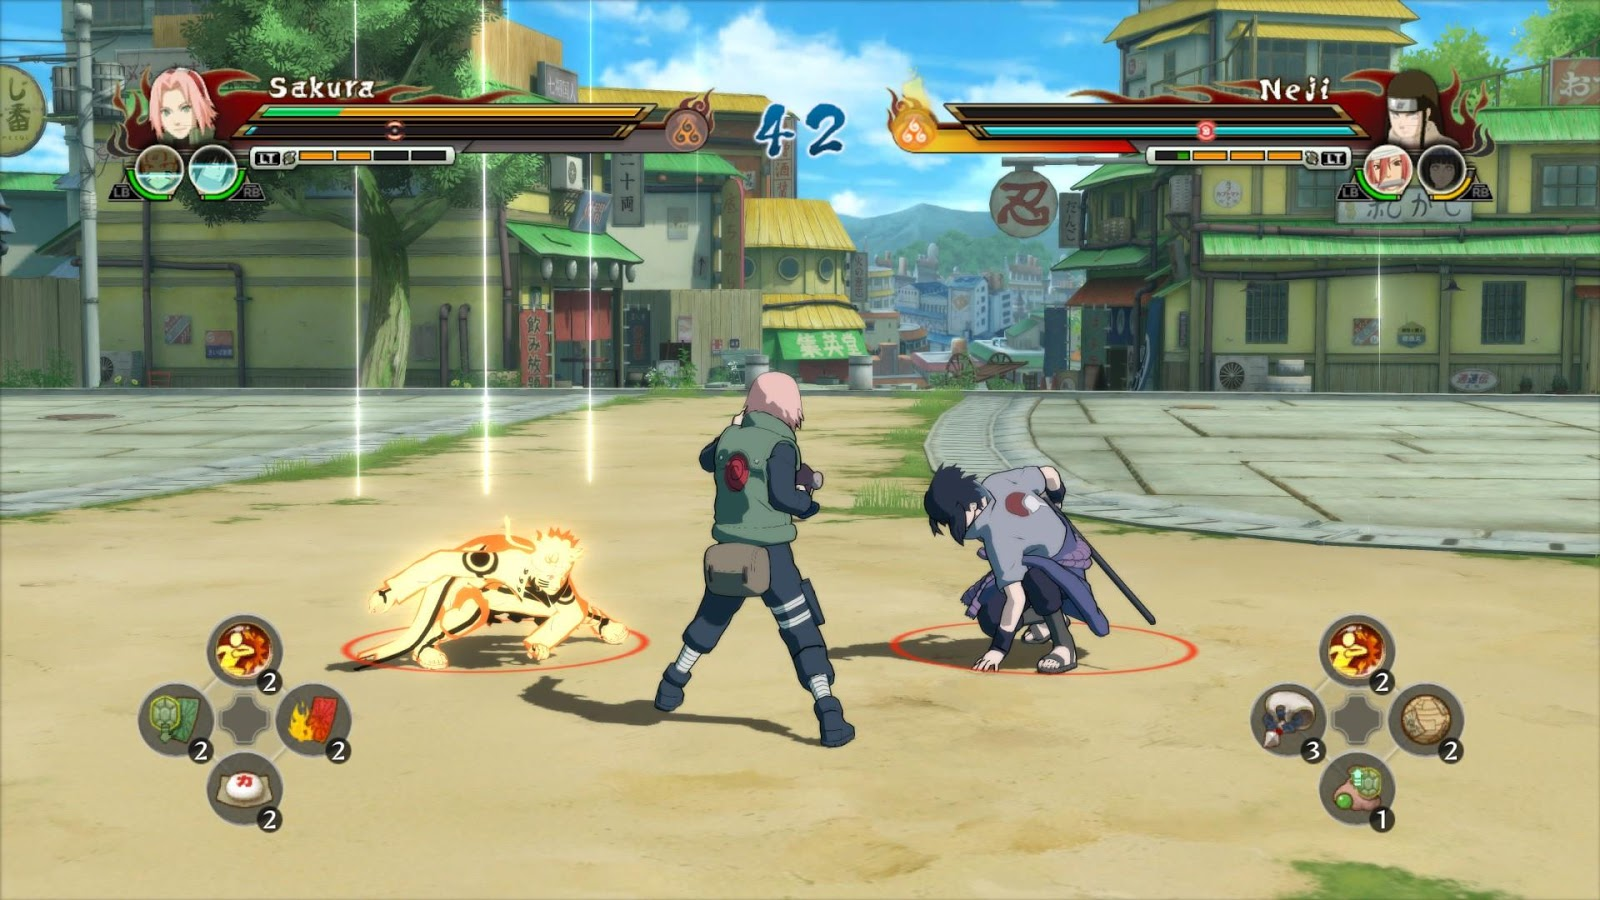 Download naruto shippuden ultimate ninja storm 3 pc compressed | Peatix